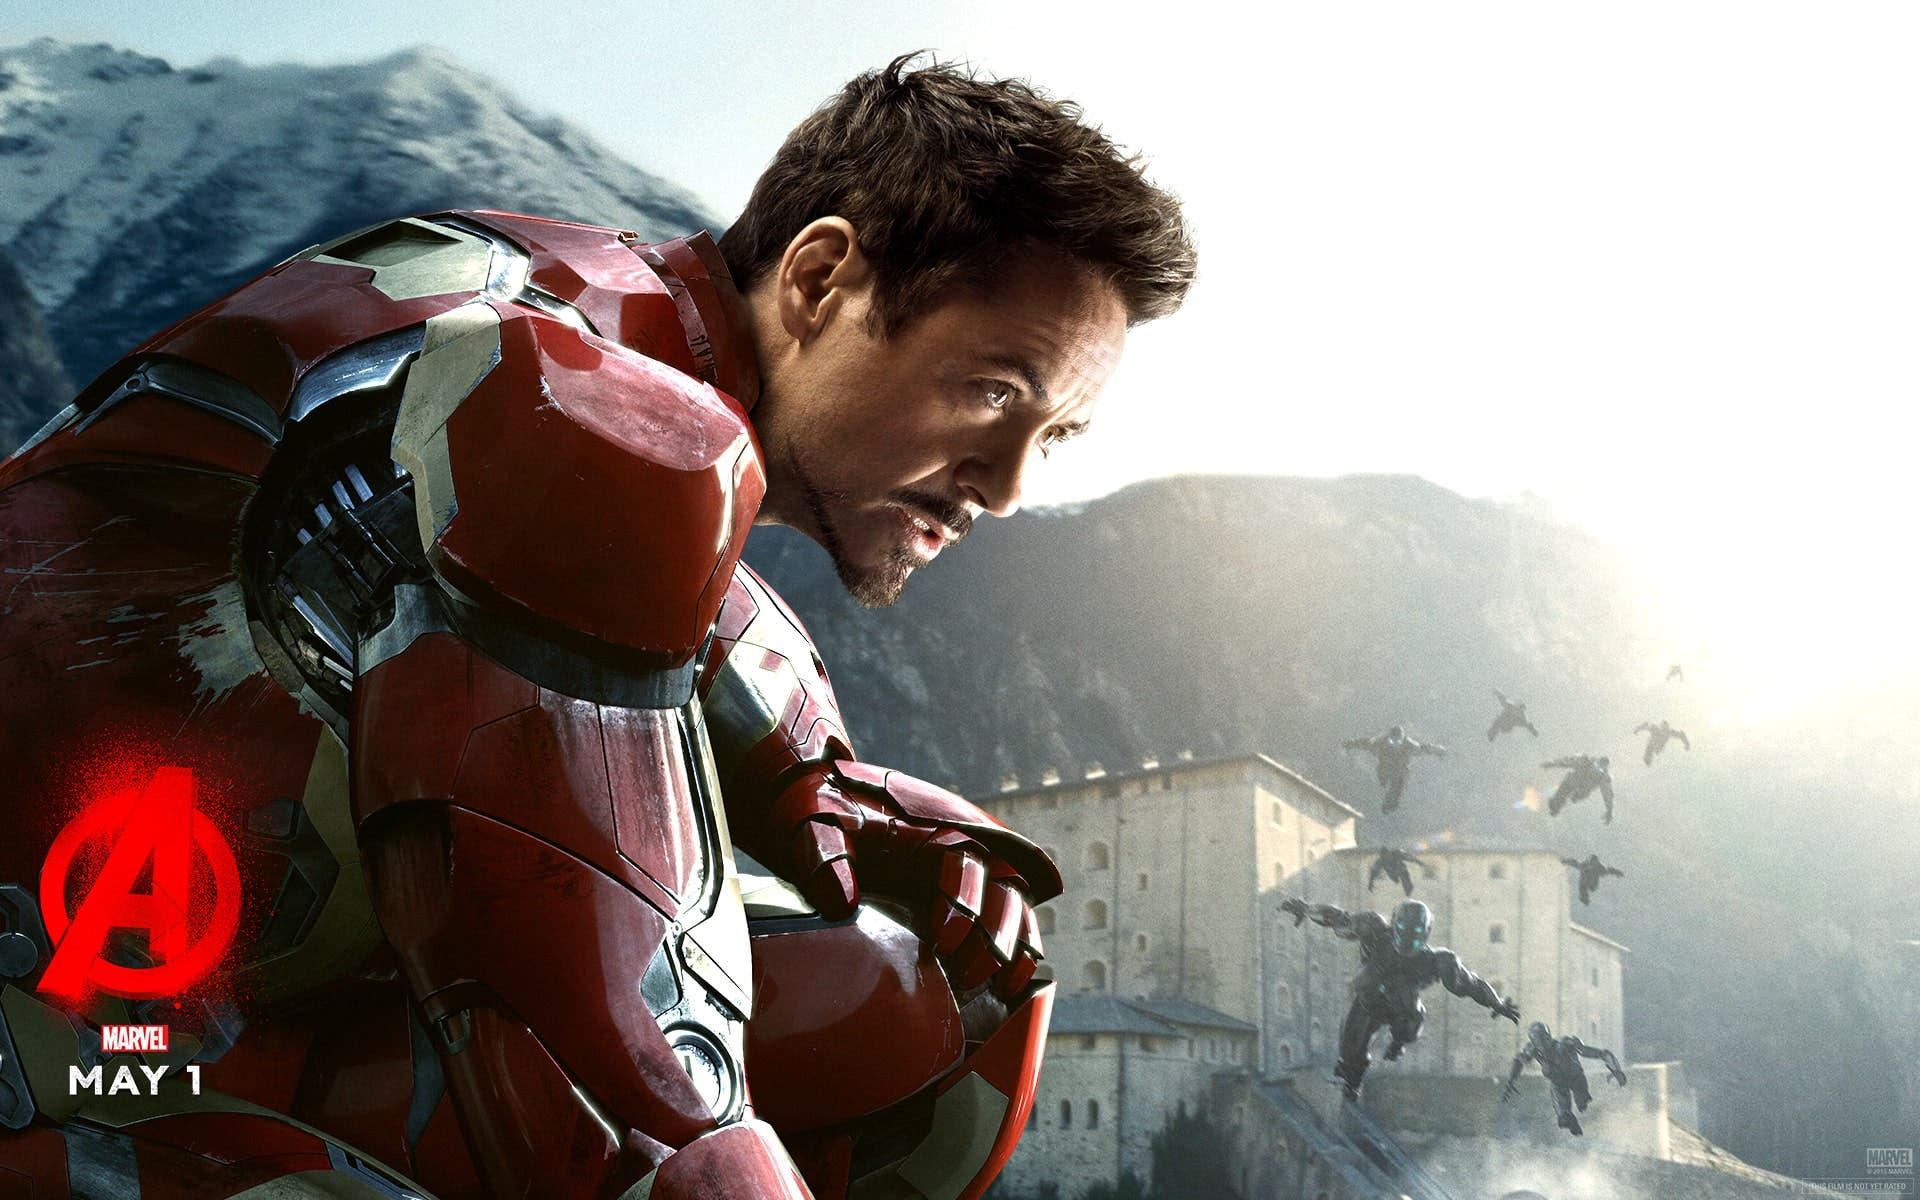 Iron Man Vengadores La era de Ultron